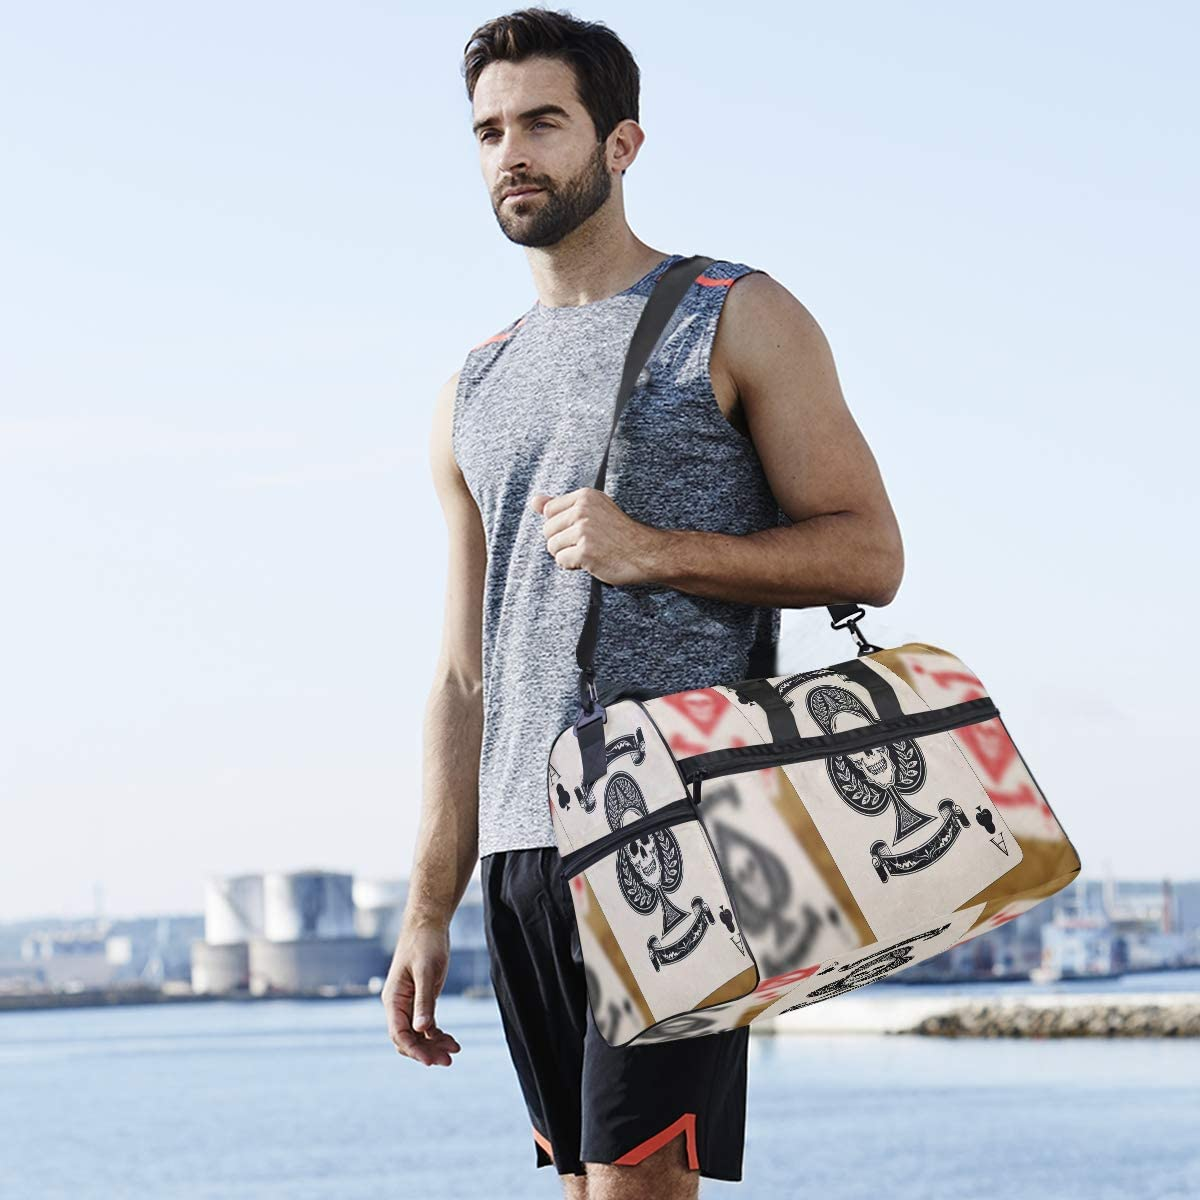 MUOOUM Clue Ace Playing Cards Large Duffle Bags Sports Gym Bag with Shoes Compartment for Men and Women